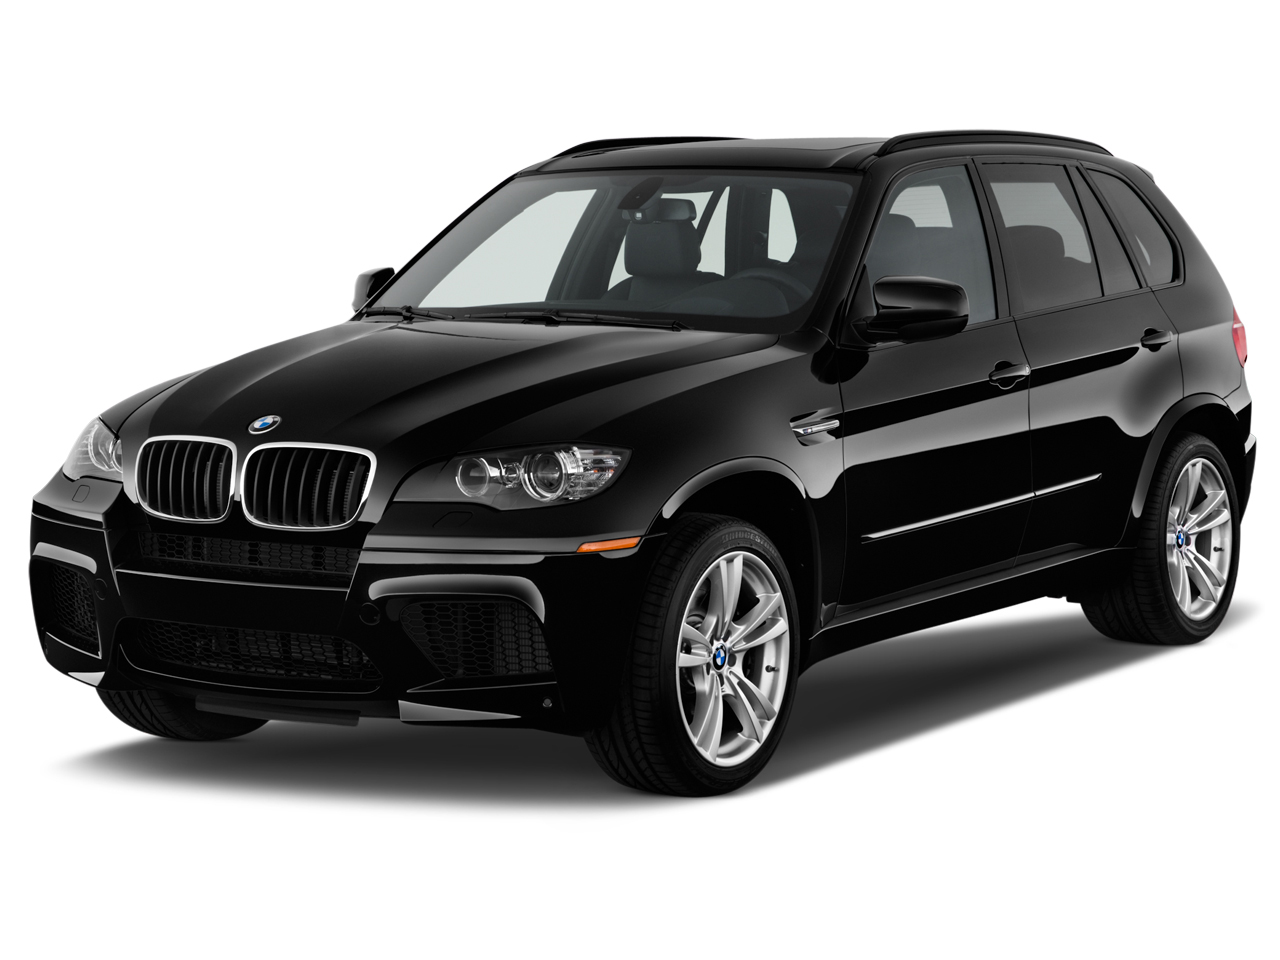 2011 Bmw X5 M Review Ratings Specs Prices And Photos